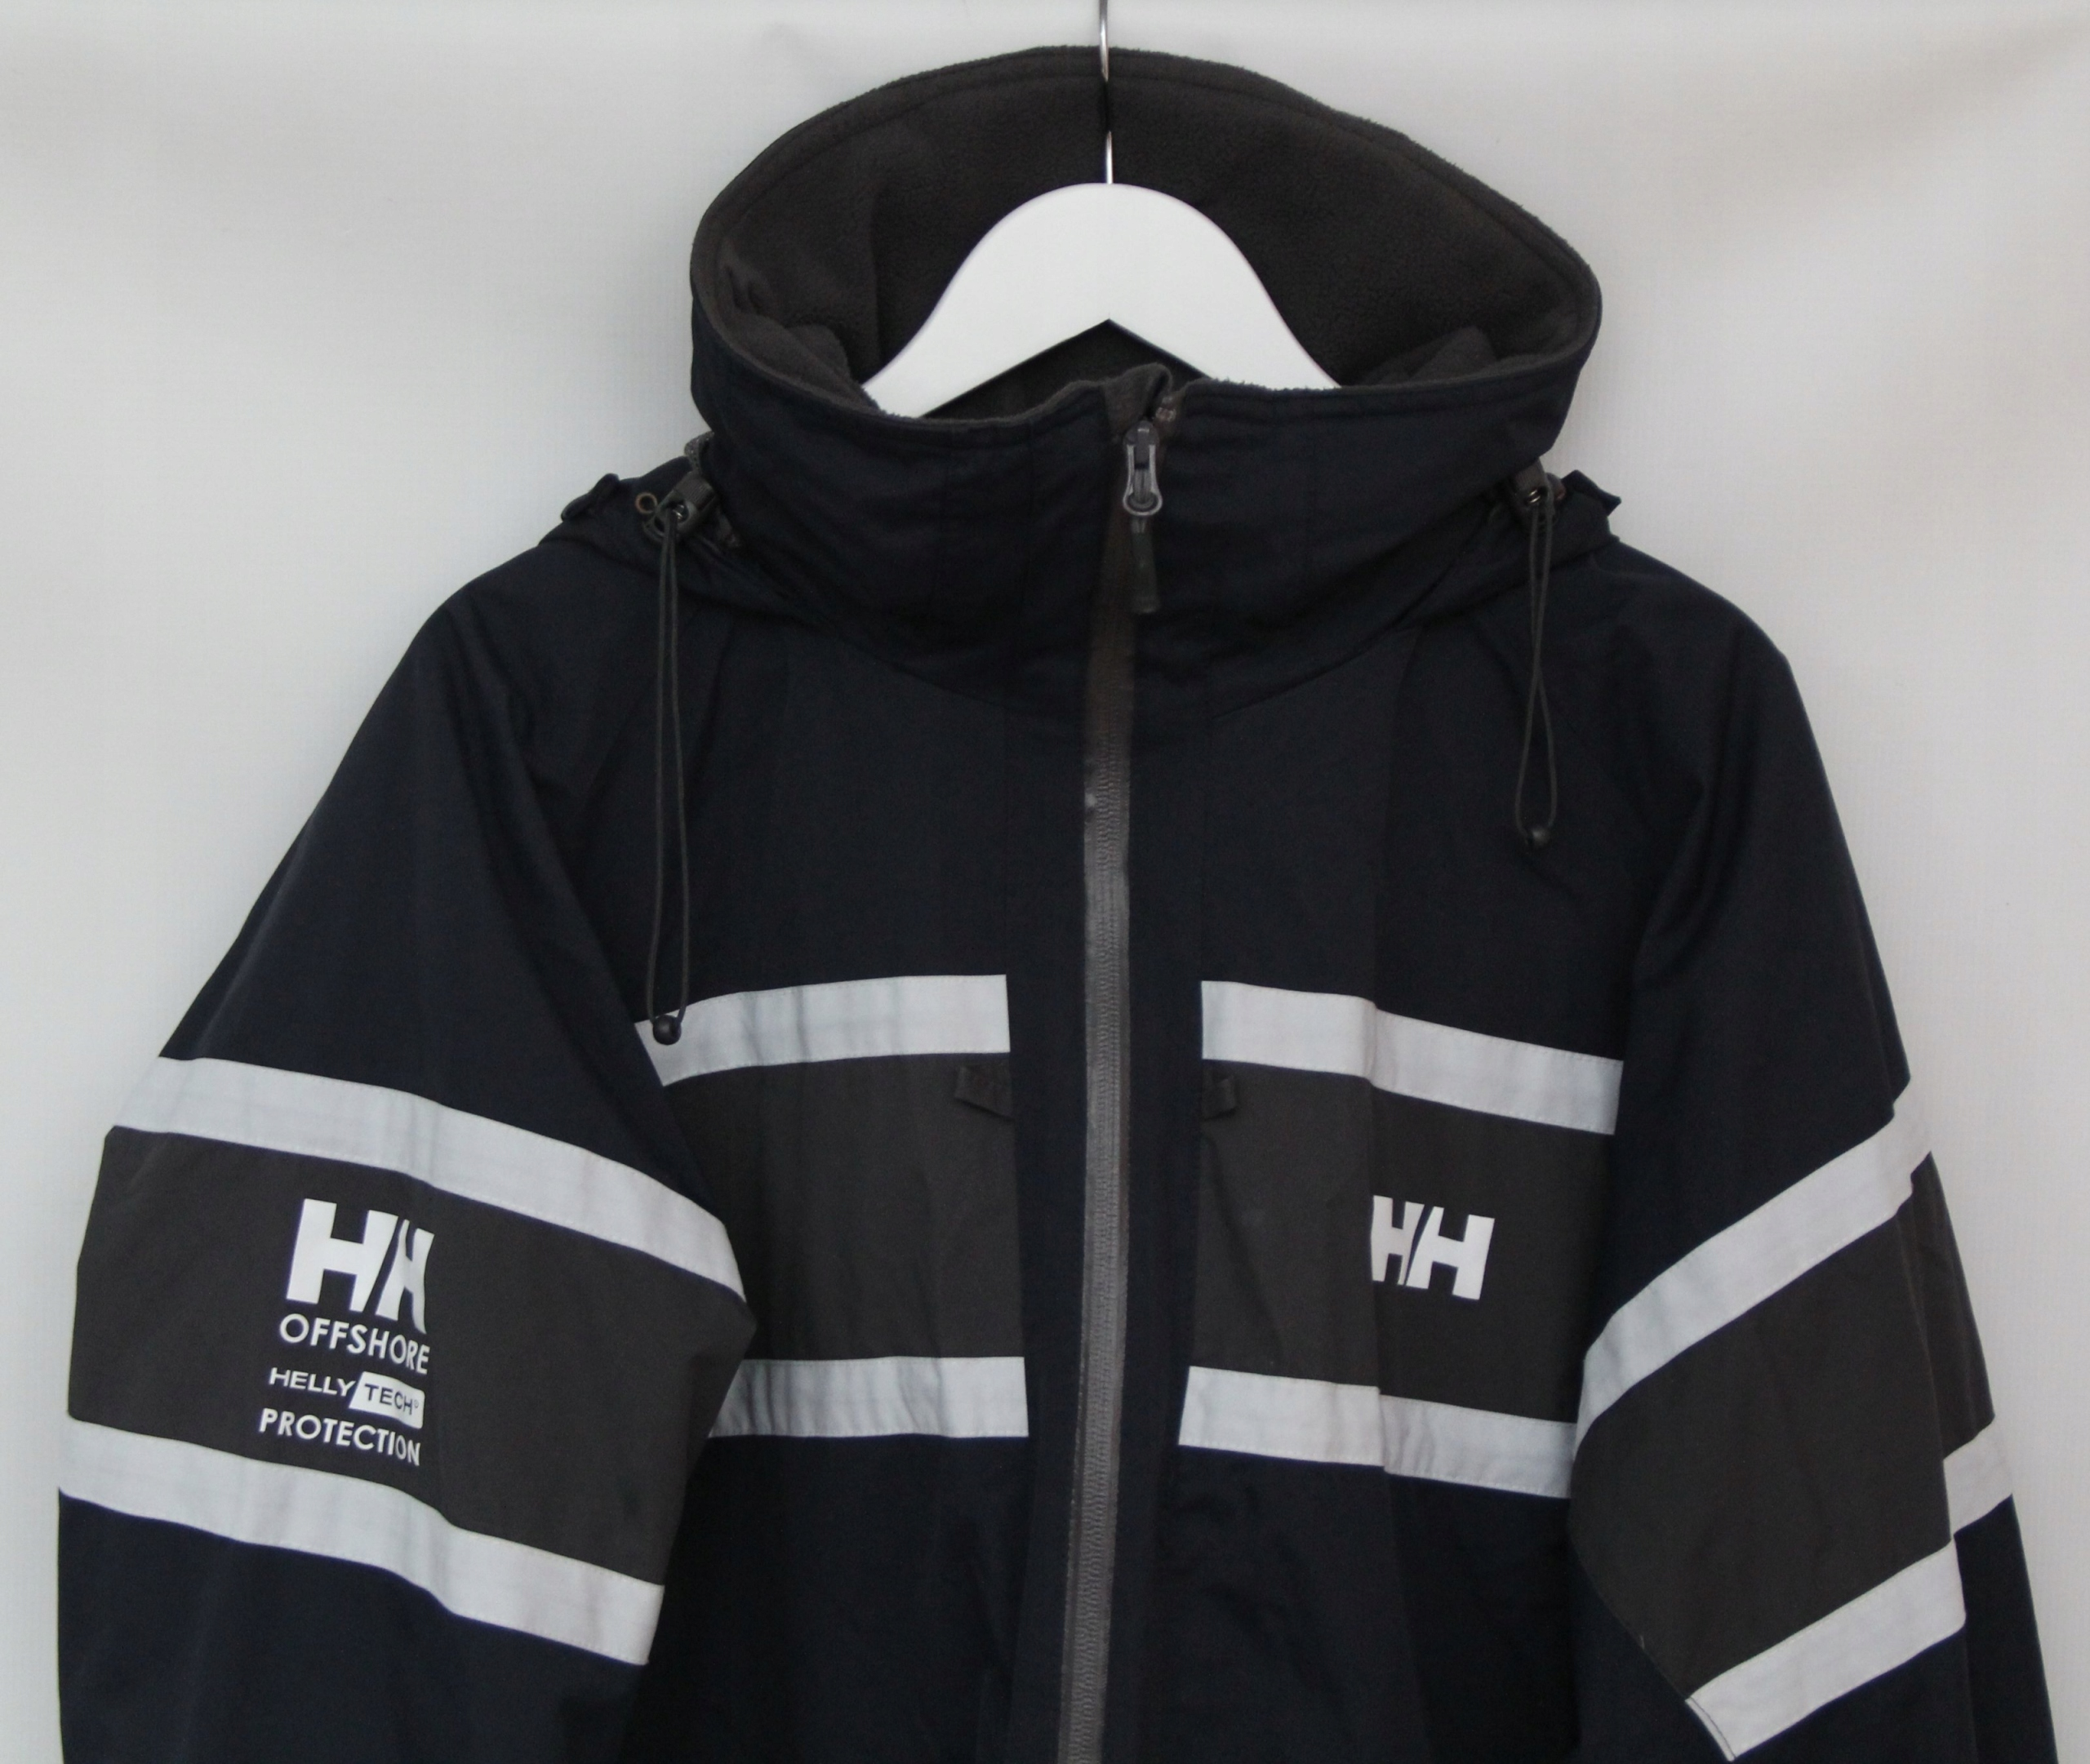 Helly Hansen Offshore Helly Tech Protection XXL